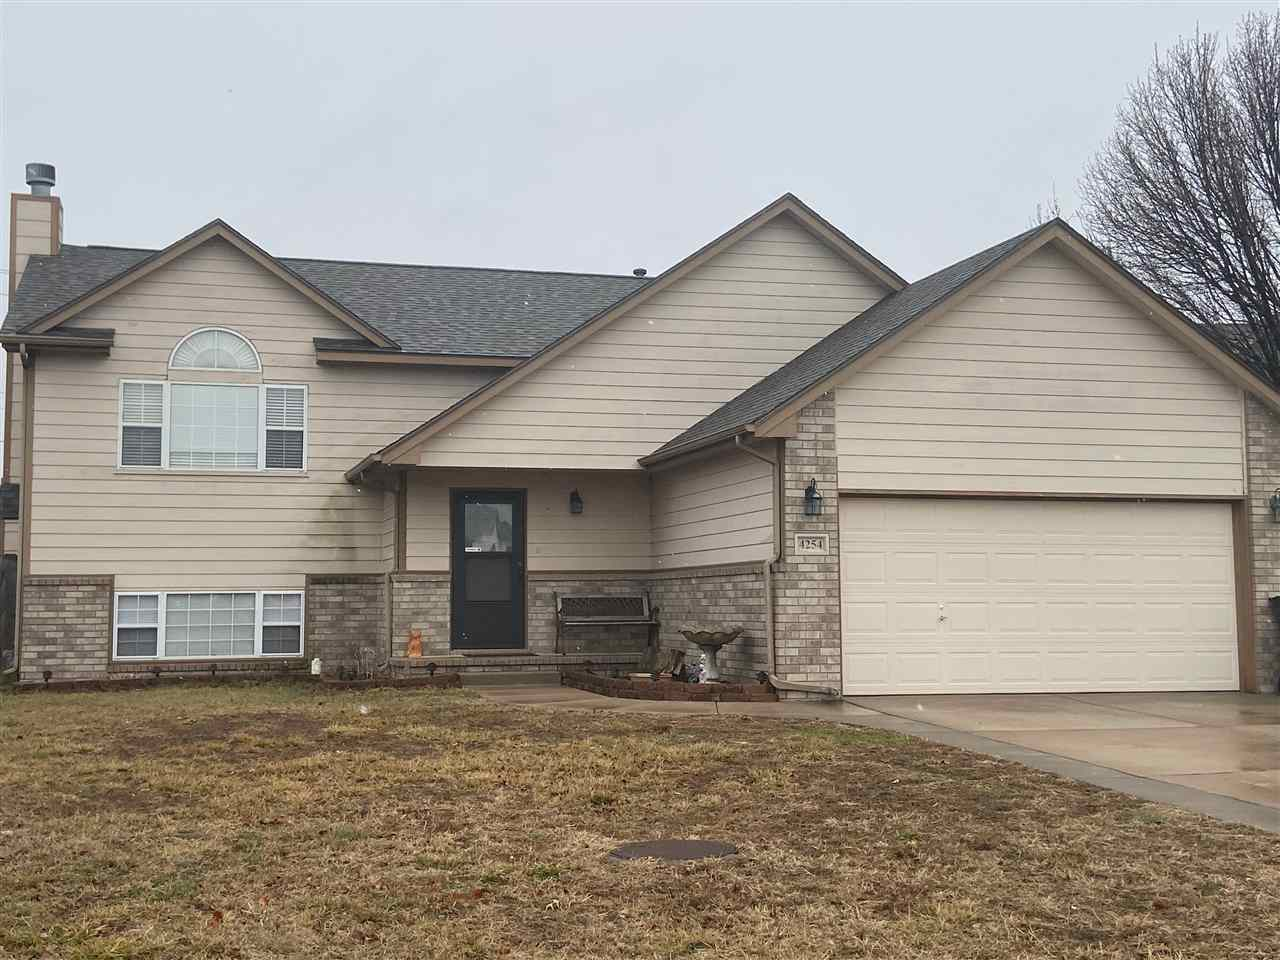 Large 5BR 3BA home in Haysville School District! Some updates include a new roof in 2018 and new AC